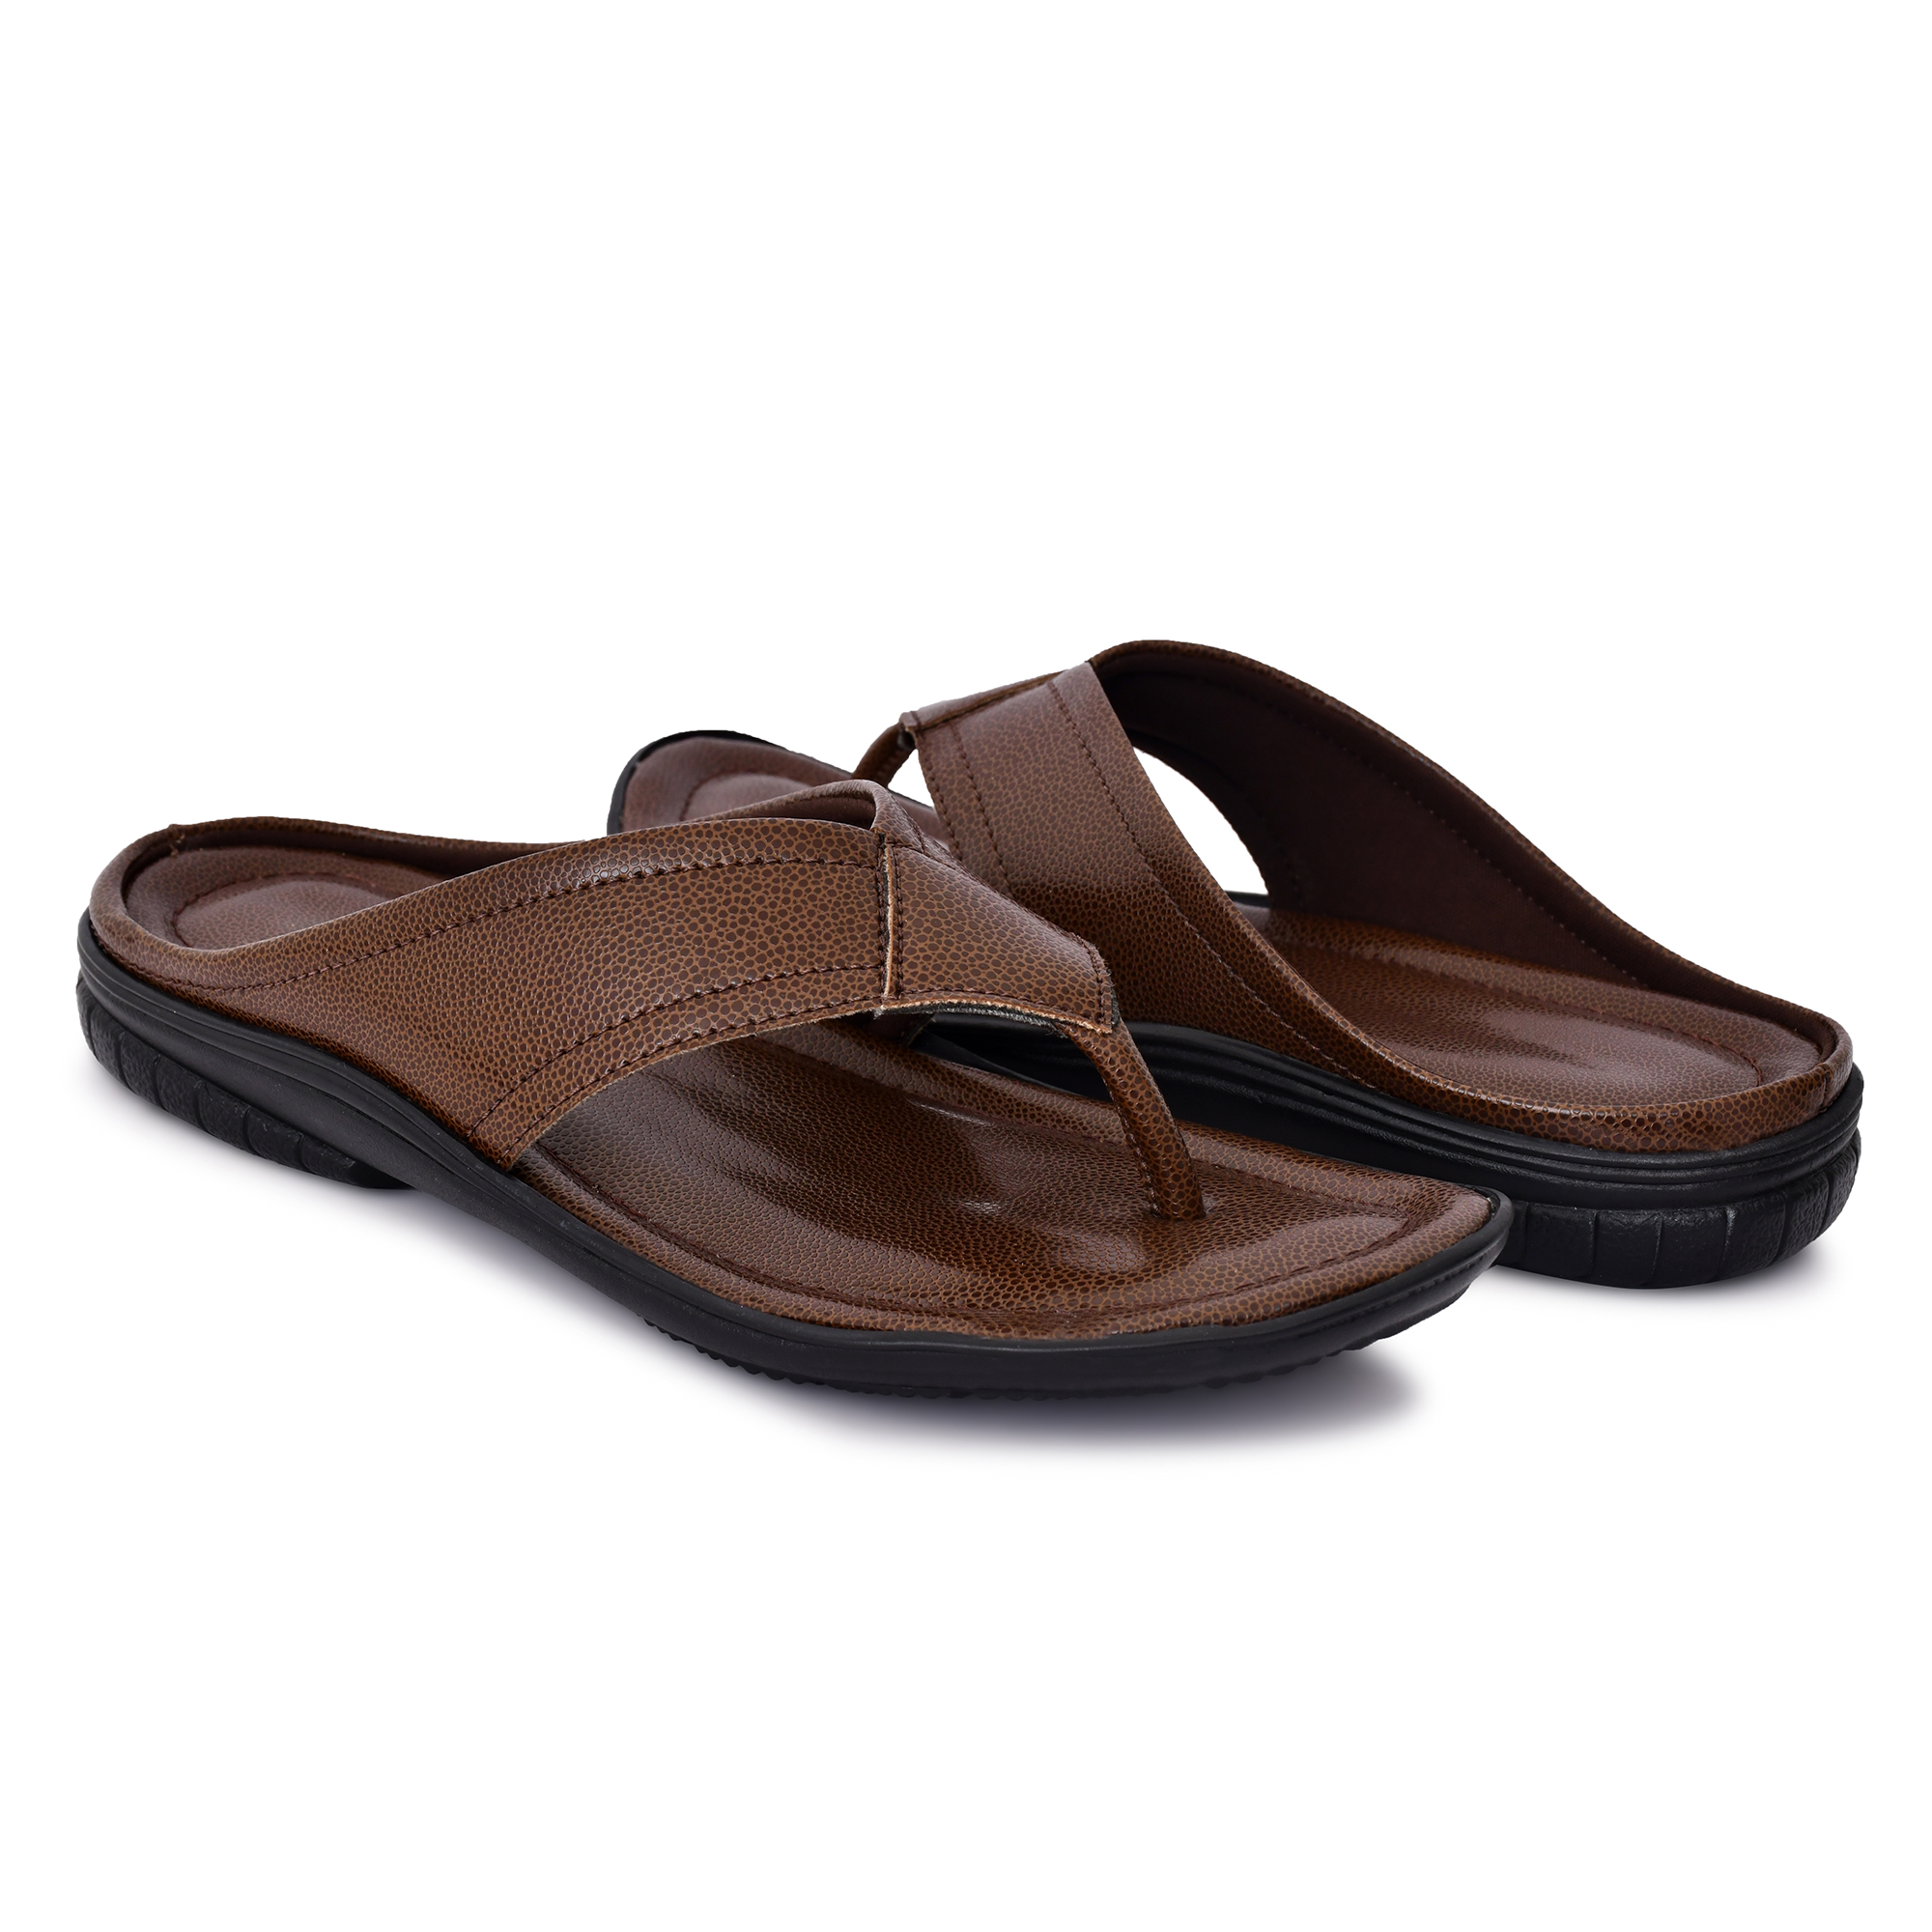 Almighty Synthetic Leather Brown Slipper STRZ1SLBROWN (BROWN, 6-10, 8 PAIRS)